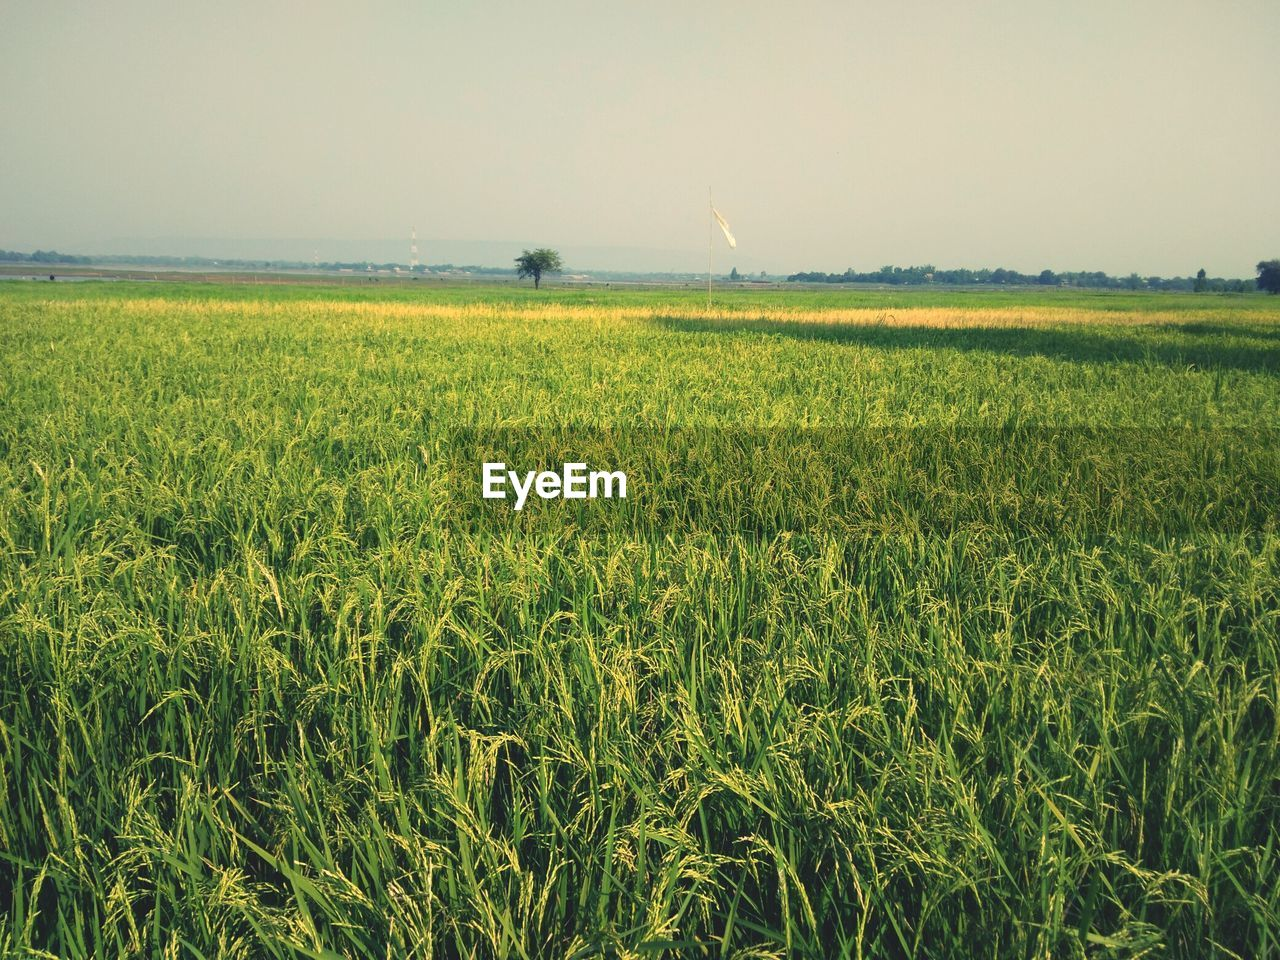 landscape, growth, field, land, beauty in nature, plant, agriculture, tranquility, tranquil scene, environment, sky, rural scene, crop, scenics - nature, farm, green color, nature, day, no people, yellow, outdoors, plantation